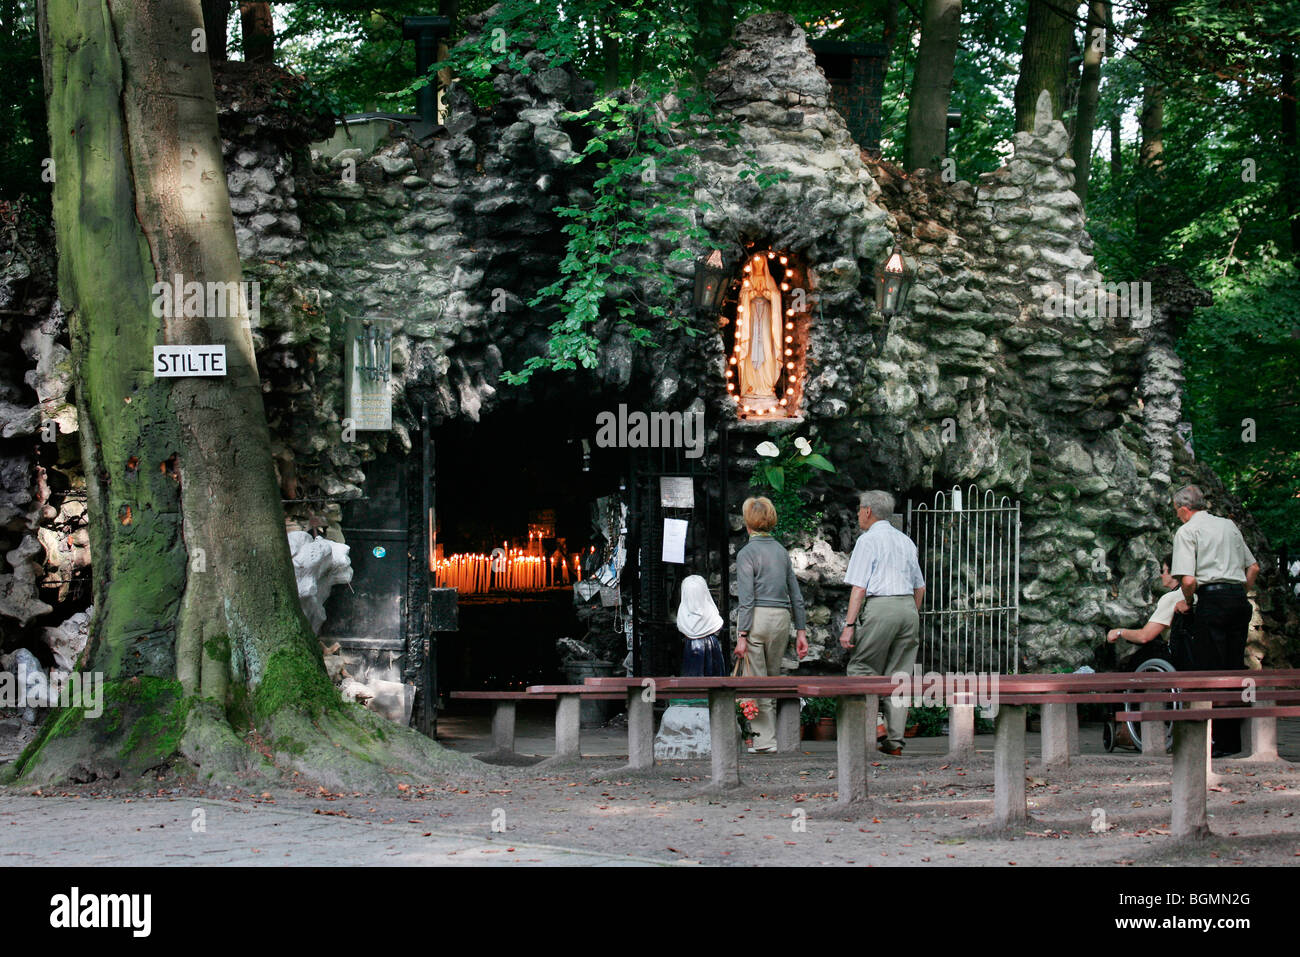 People praying at the Lourdes grotto, Oostakker-Lourdes place of pilgrimage near Ghent, East Flanders, Belgium - Stock Image